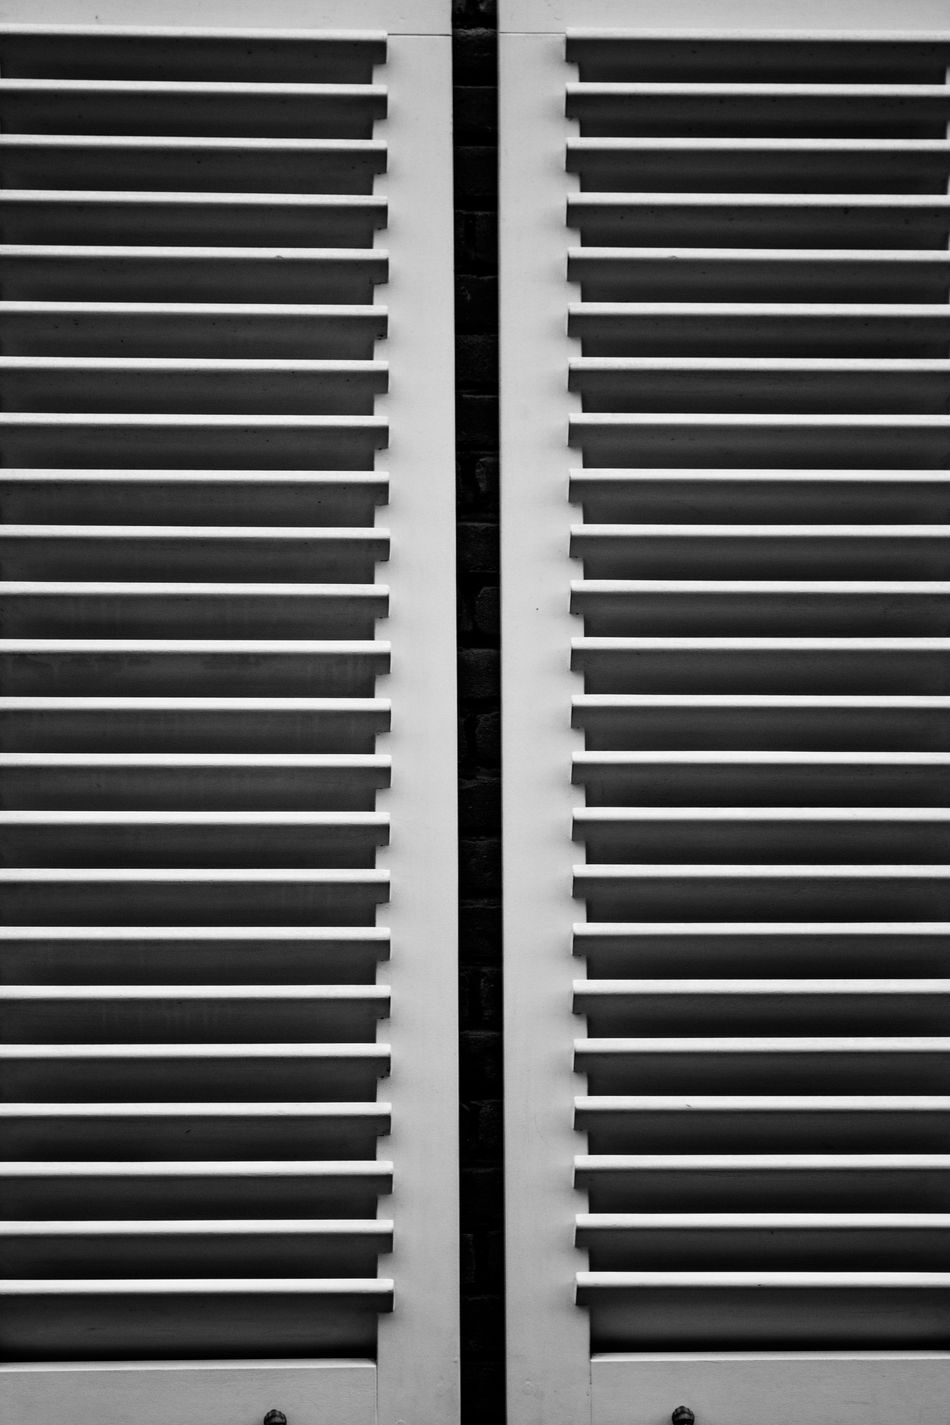 B&w Backgrounds Black & White Black And White Black And White Photography Black&white Blackandwhite Blackandwhite Photography Blackandwhitephotography Close-up Corrugated Iron Day Full Frame Germany Indoors  Metal No People Pattern Shades Street Street Fashion Street Photography Streetart Streetphoto_bw Streetphotography